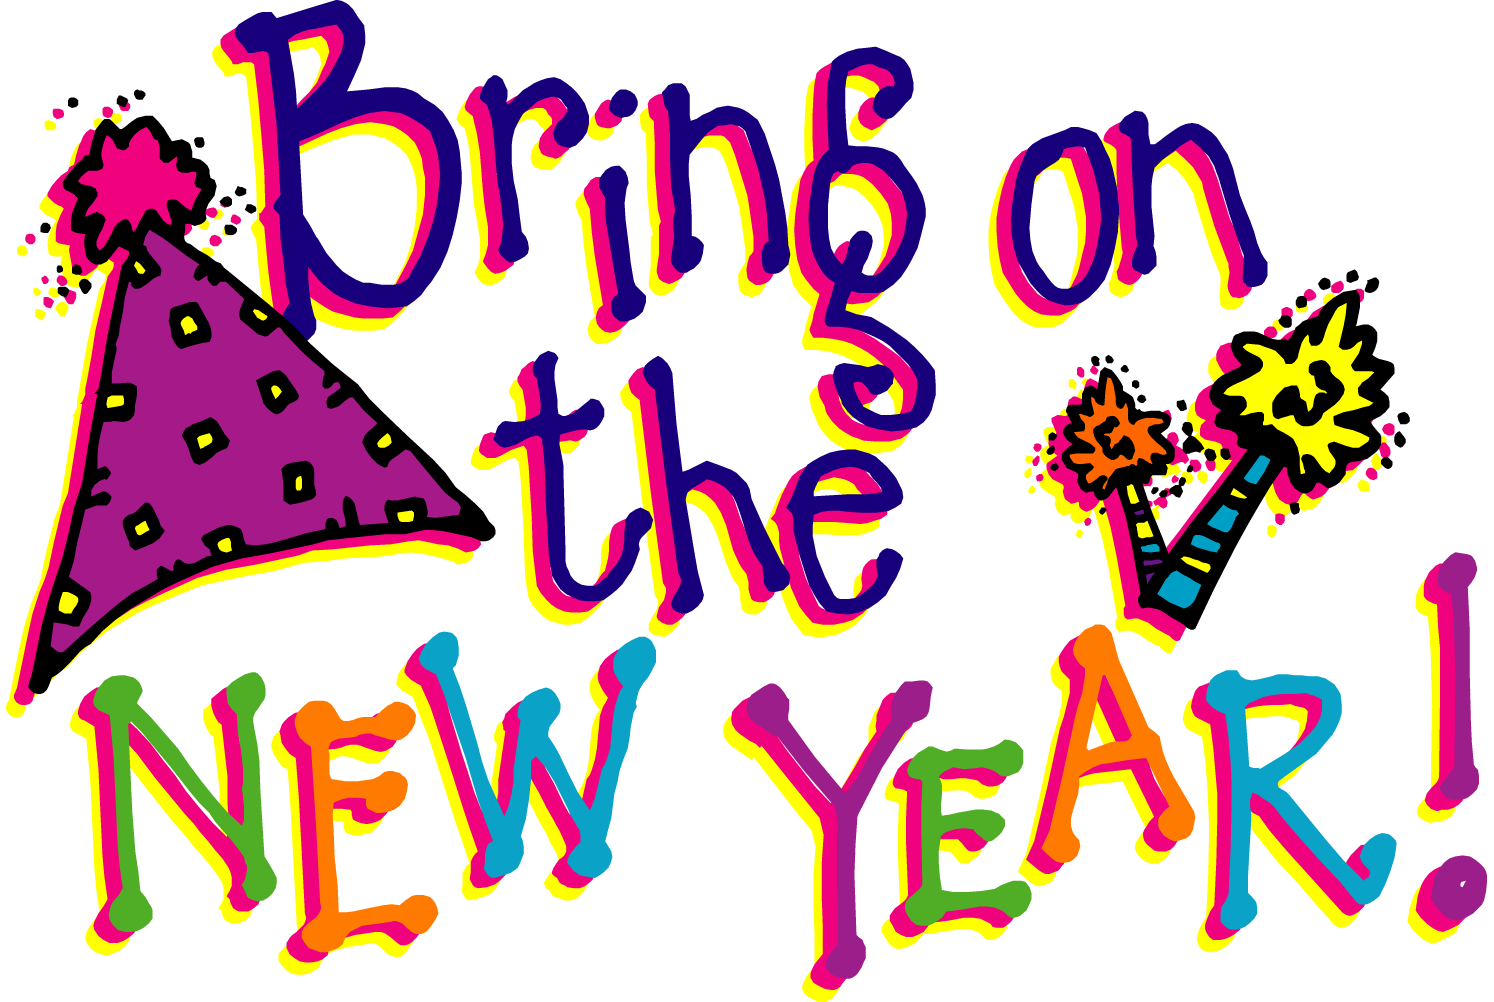 Free Happy New Year 2015 Clipart Images-Free Happy New Year 2015 Clipart Images-8